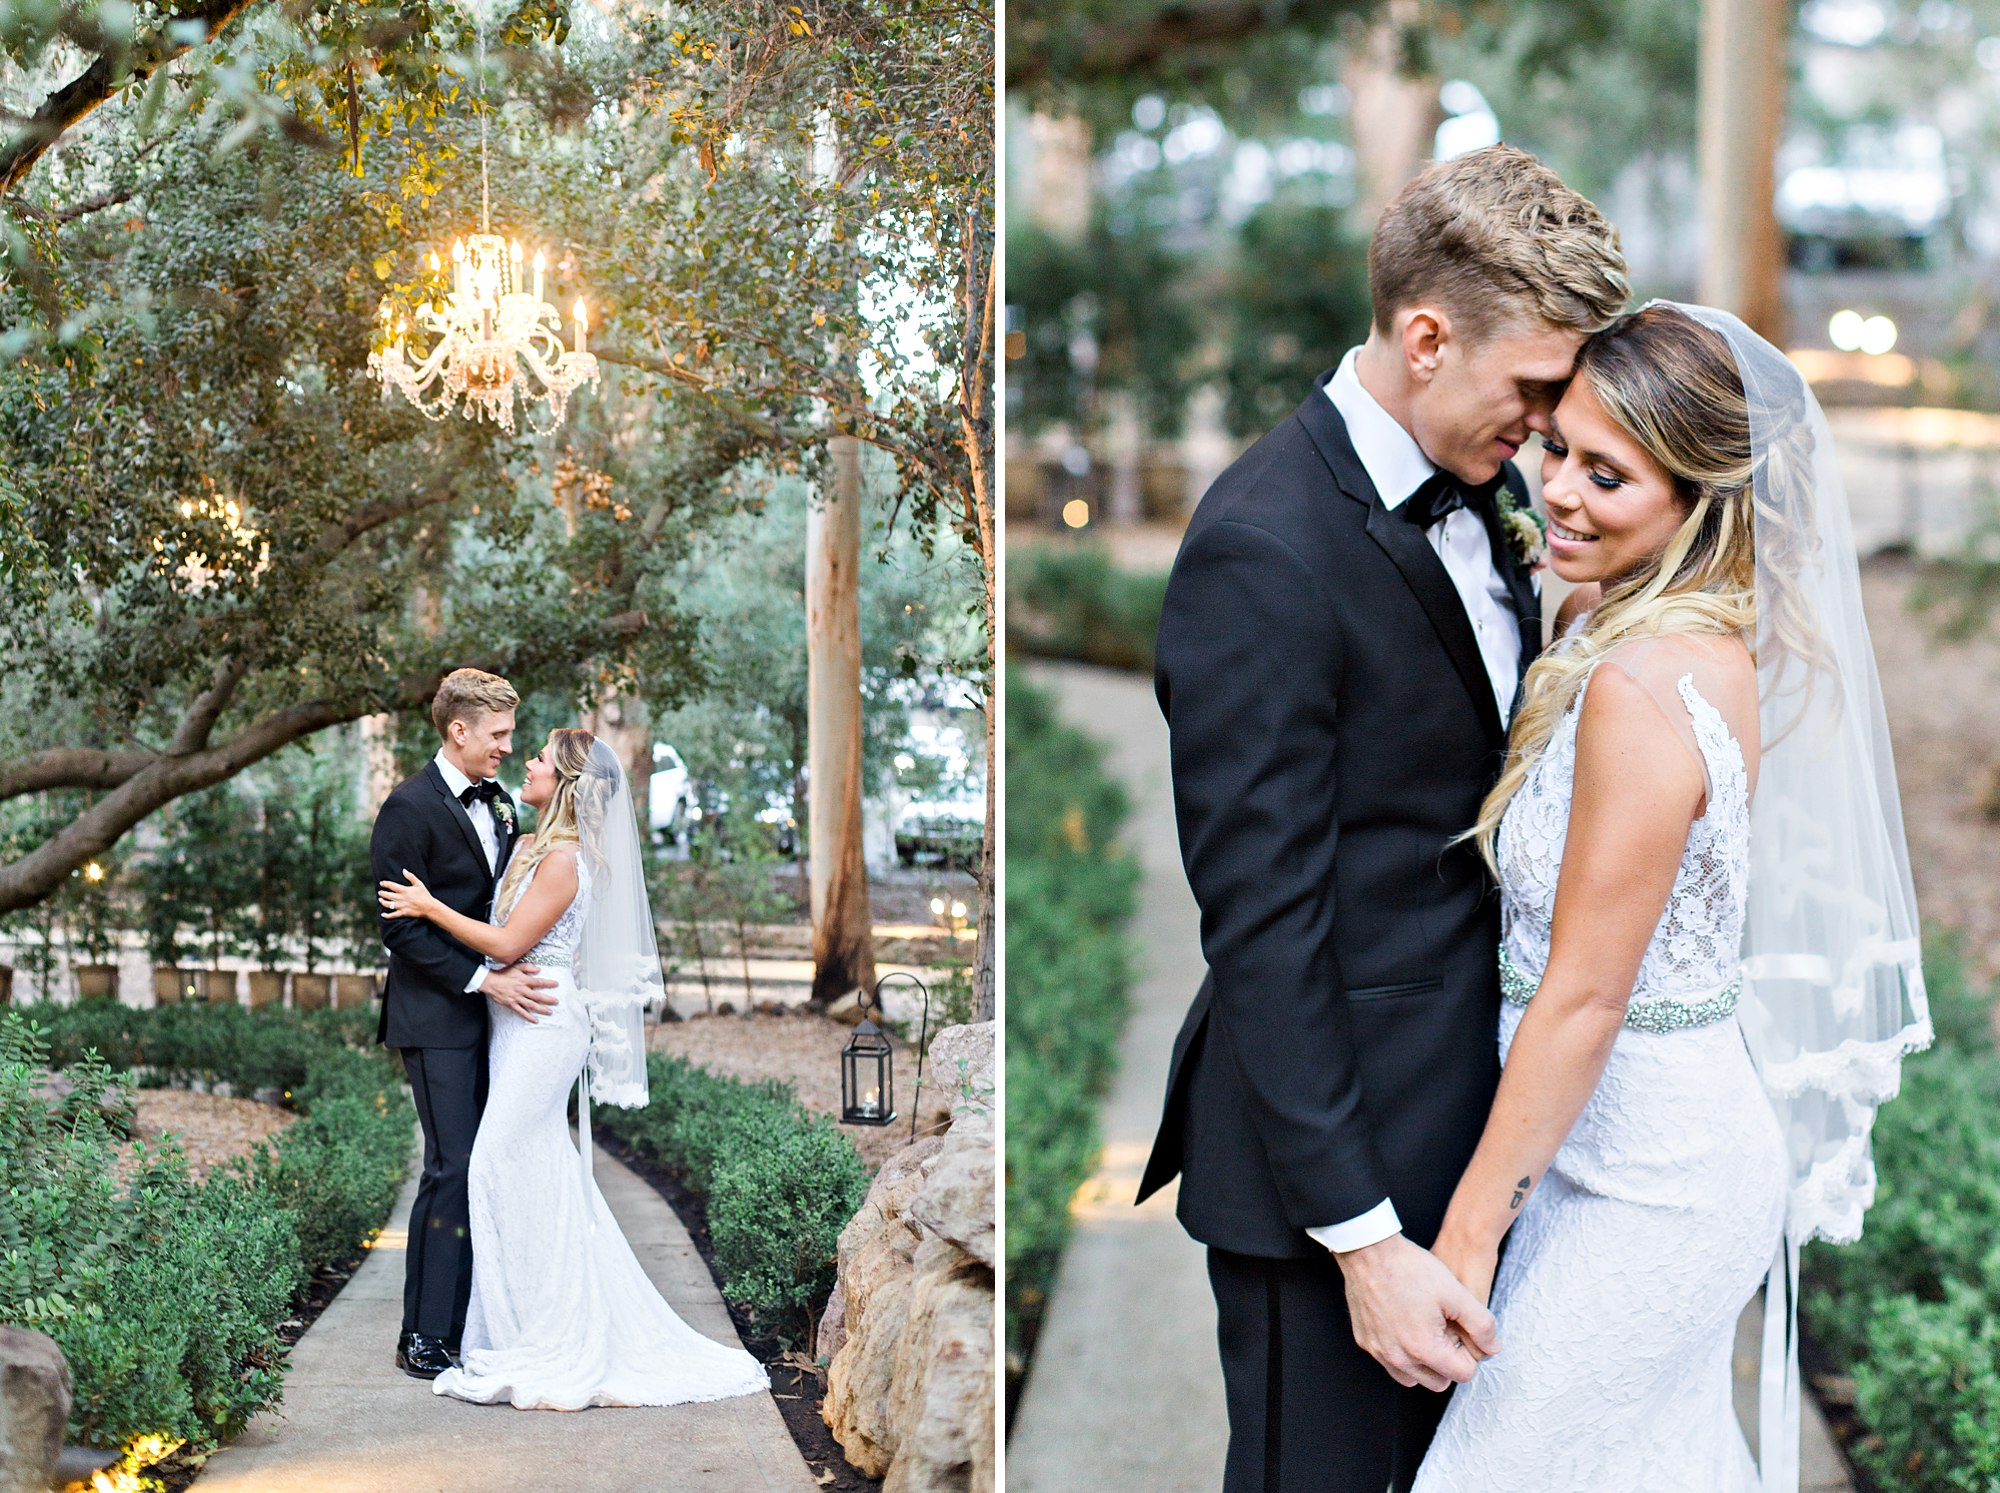 Calamigos Ranch Wedding - Evelyn Molina_0011.jpg